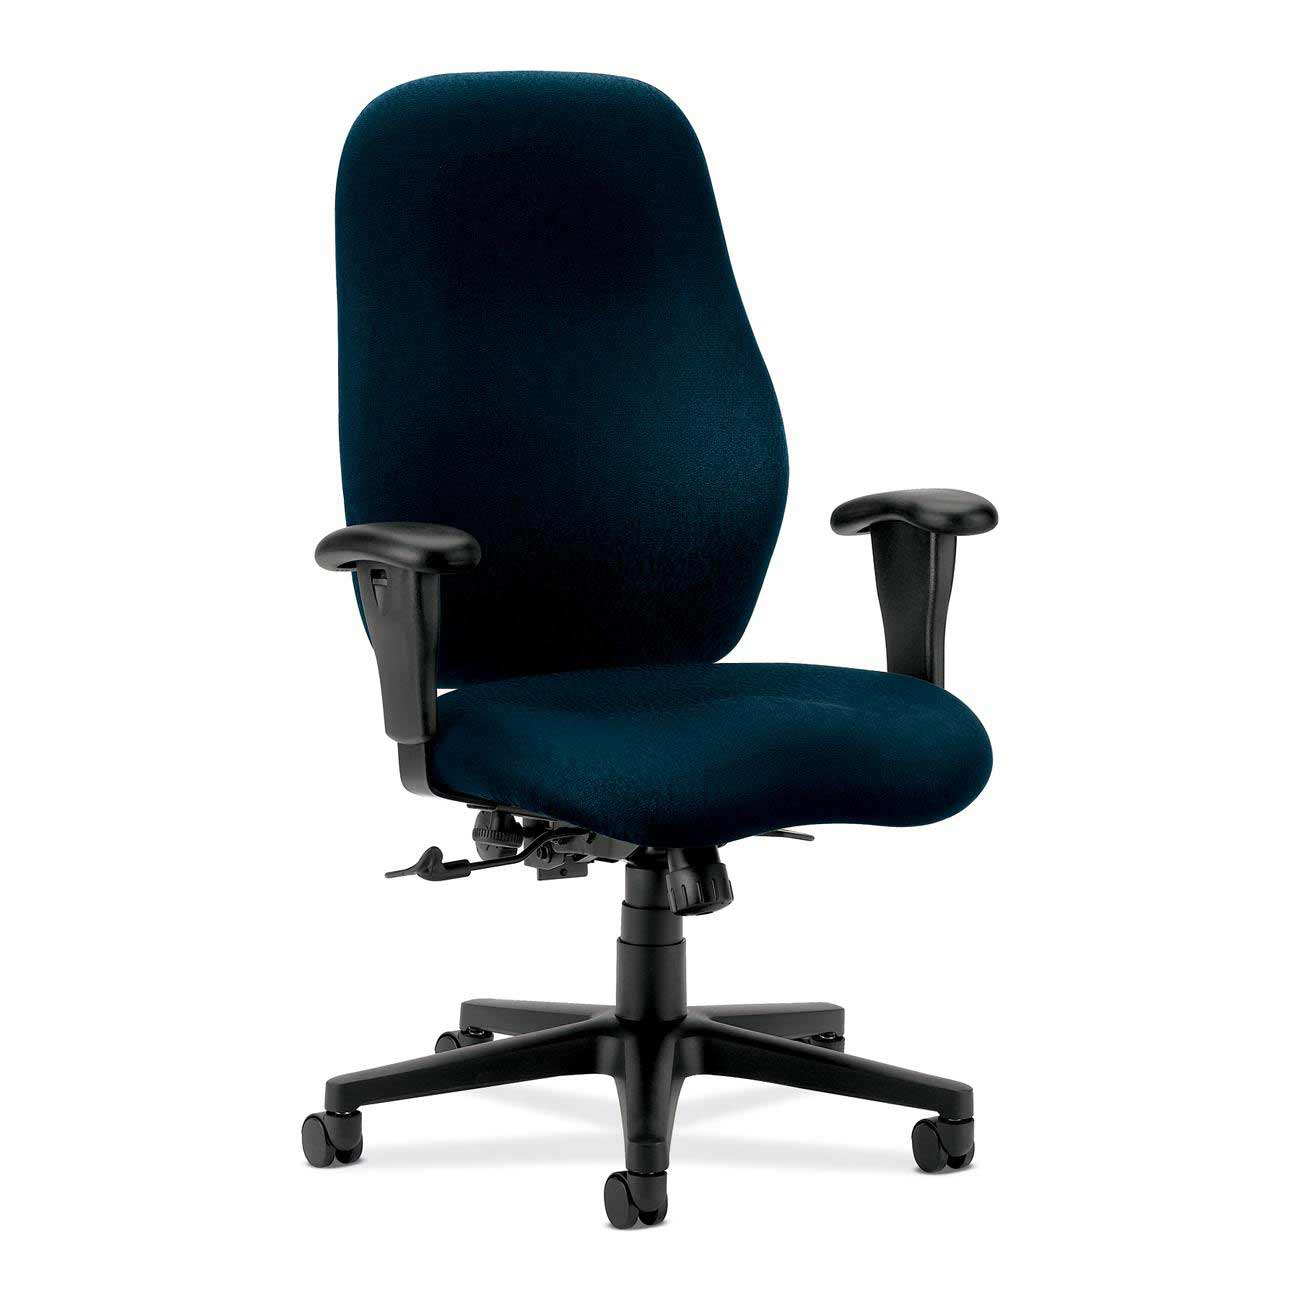 Office Chair – Chairs – By HON – Compare Prices, Reviews and Buy